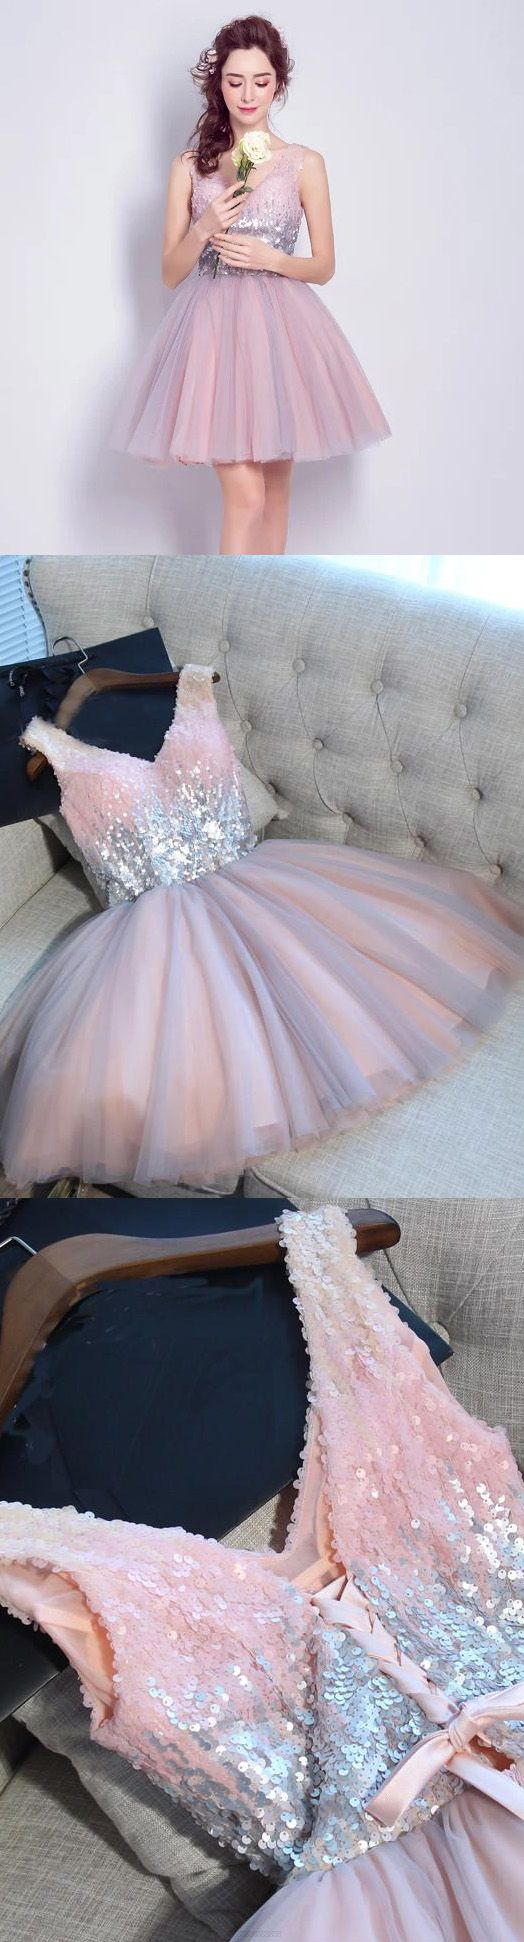 Short Prom Dresses, Pink Prom Dresses, Sexy Prom dresses, Prom Dresses Short, Short Pink Prom Dresses, Homecoming Dresses Short, Prom Short Dresses, Short Homecoming Dresses, Sexy Party Dresses, Sleeveless Party Dresses, Bandage Homecoming Dresses, Mini Party Dresses